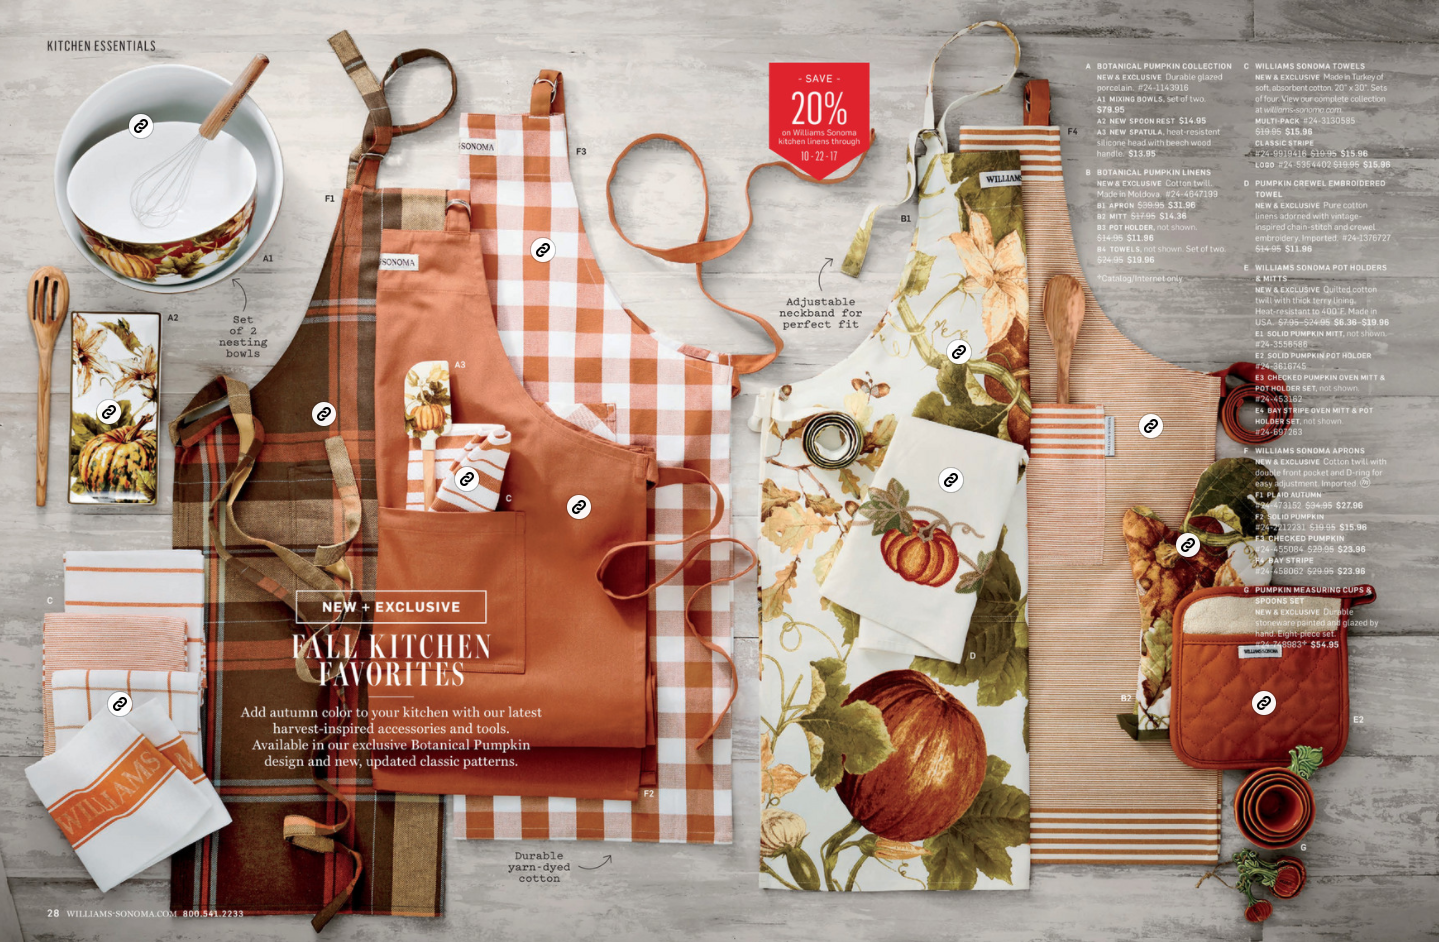 Photography: Anna Williams, Food Styling: George Delose, Prop Styling: Marcus Hay for SMH, Inc